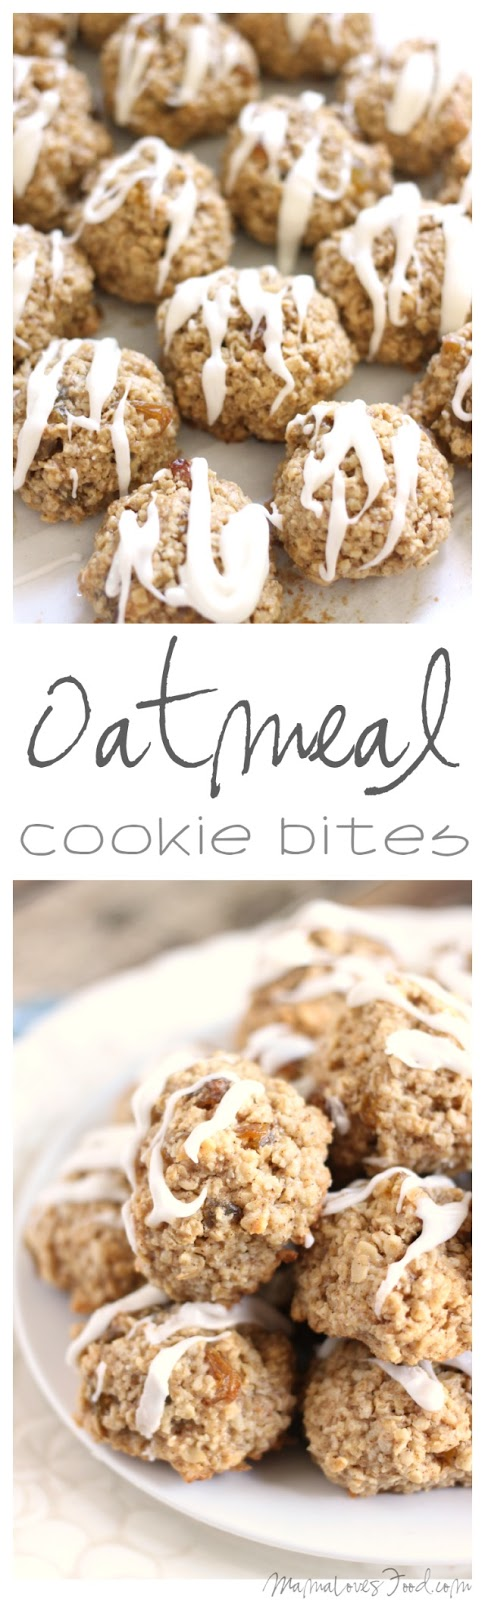 Flourless Oatmeal Cookie Bites